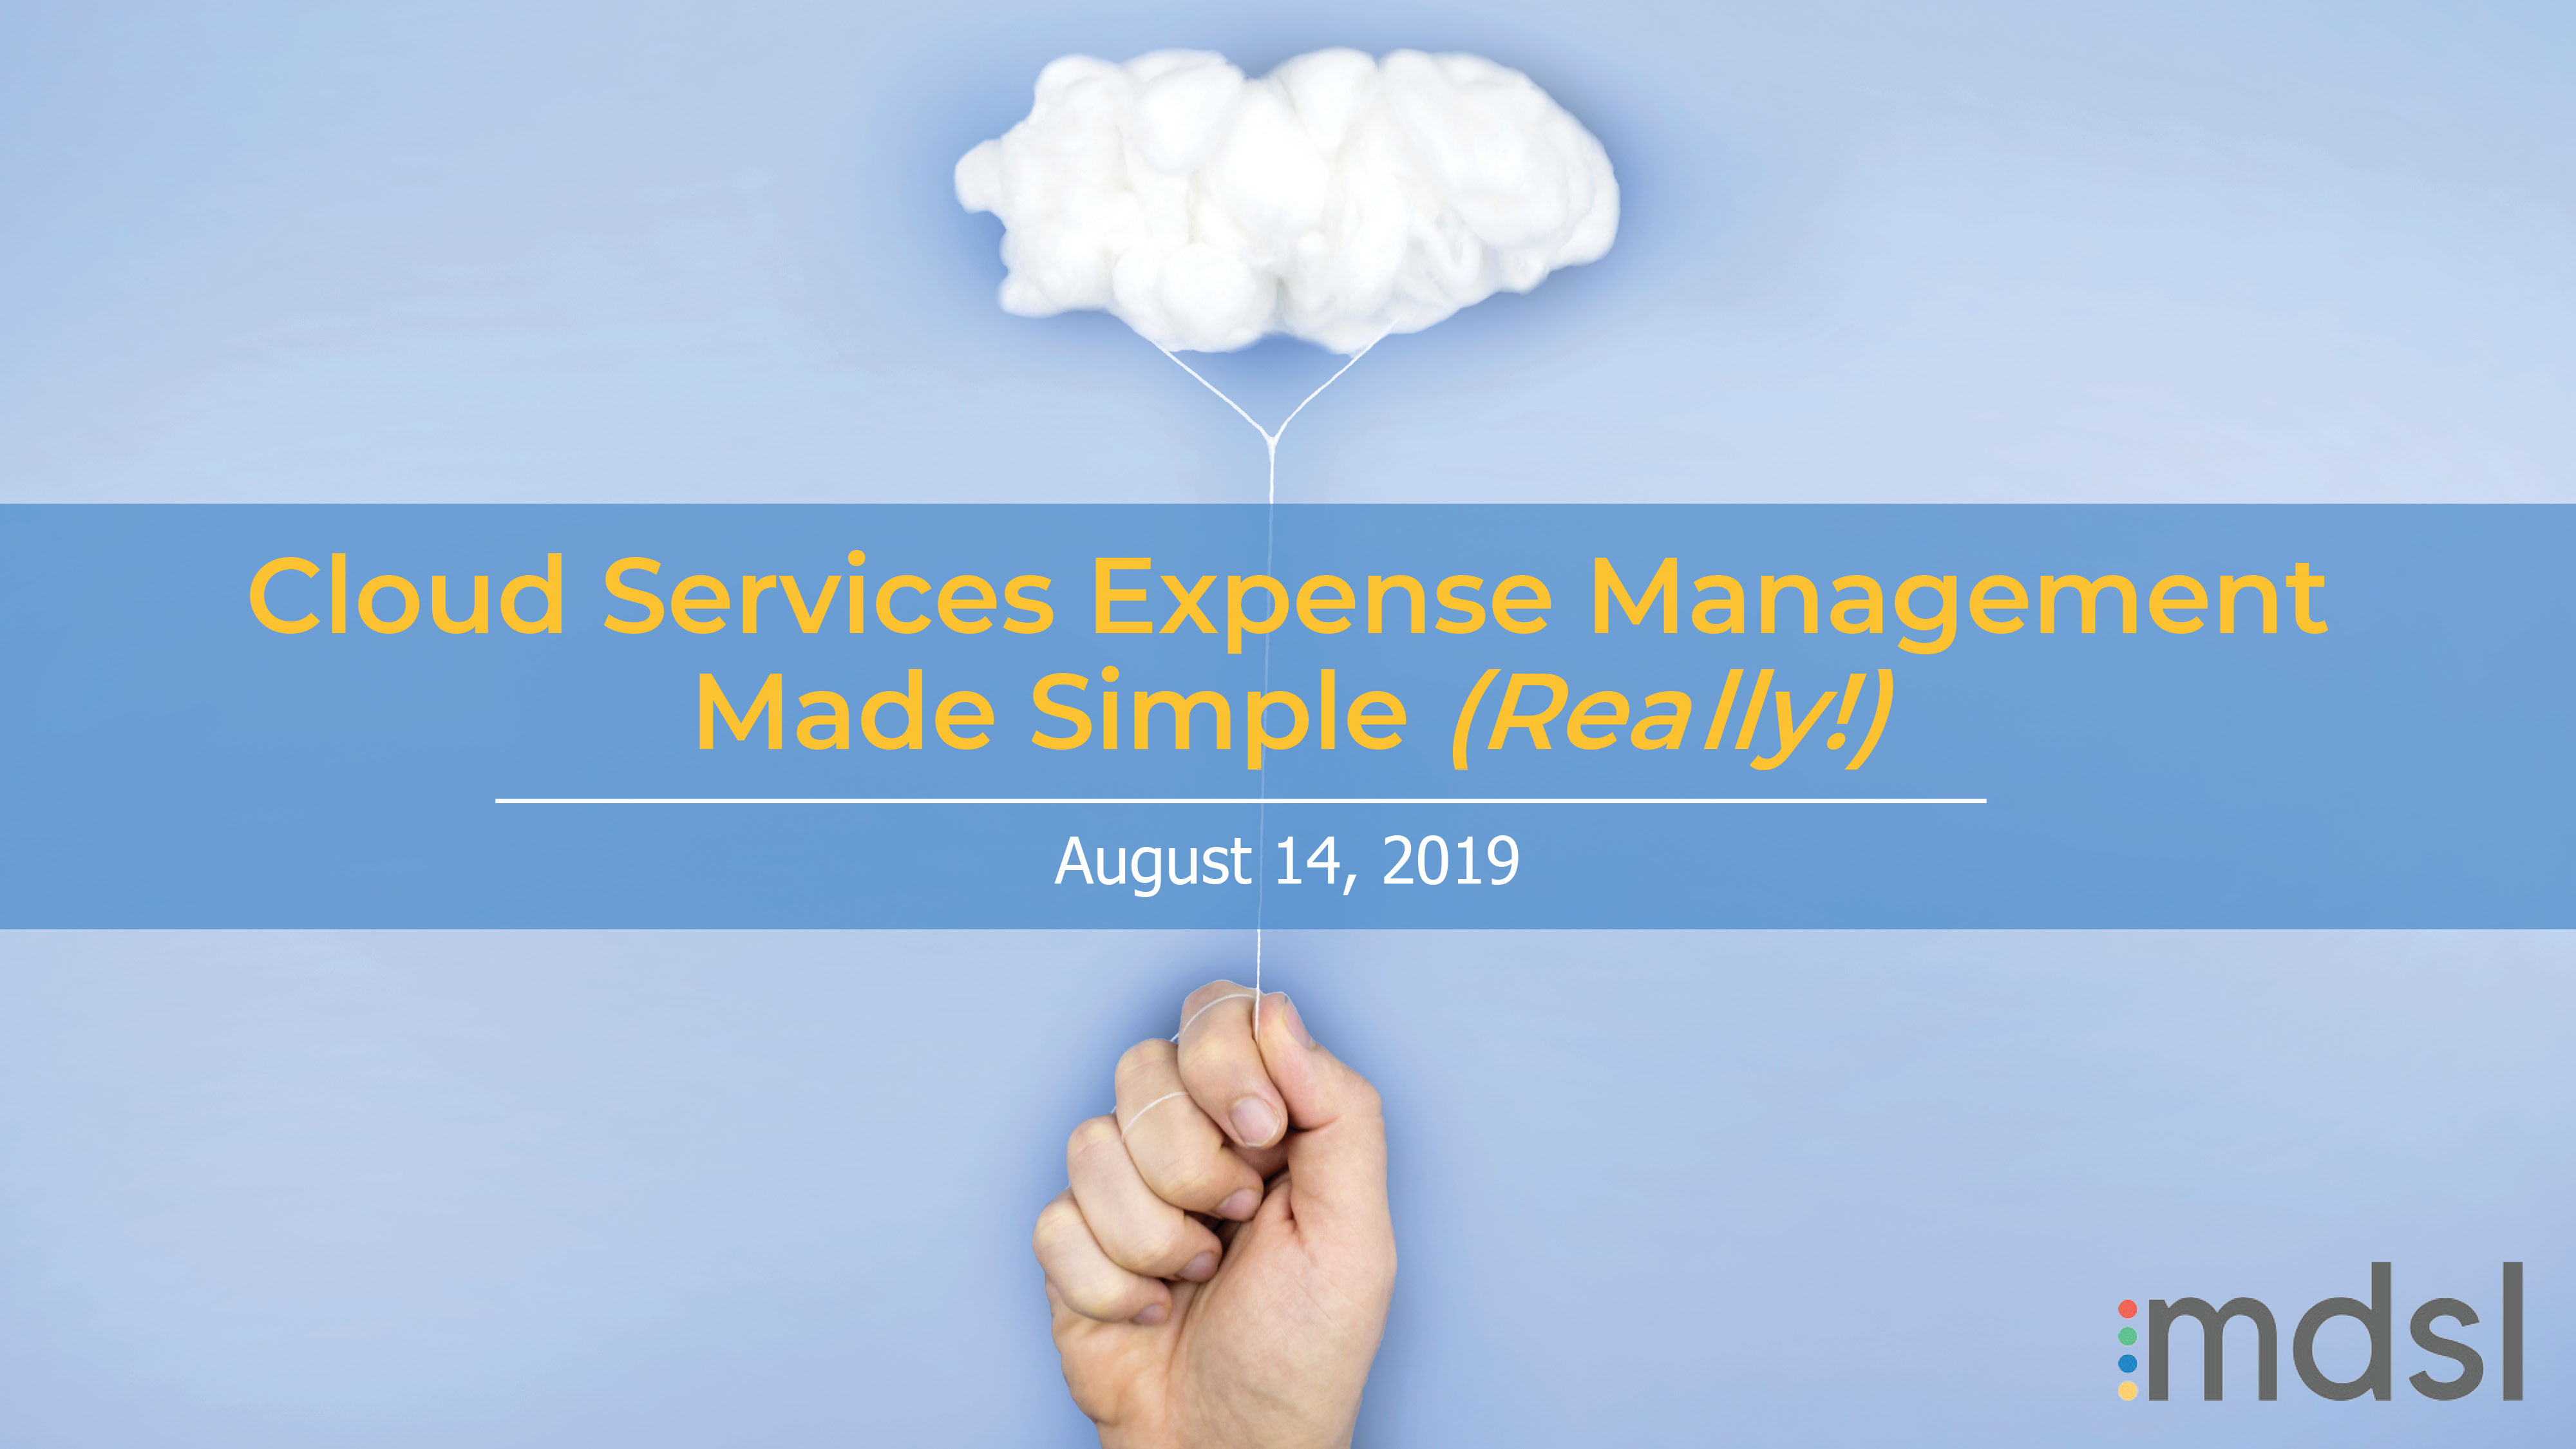 Cloud Services Expense Management Made Simple (Really!)